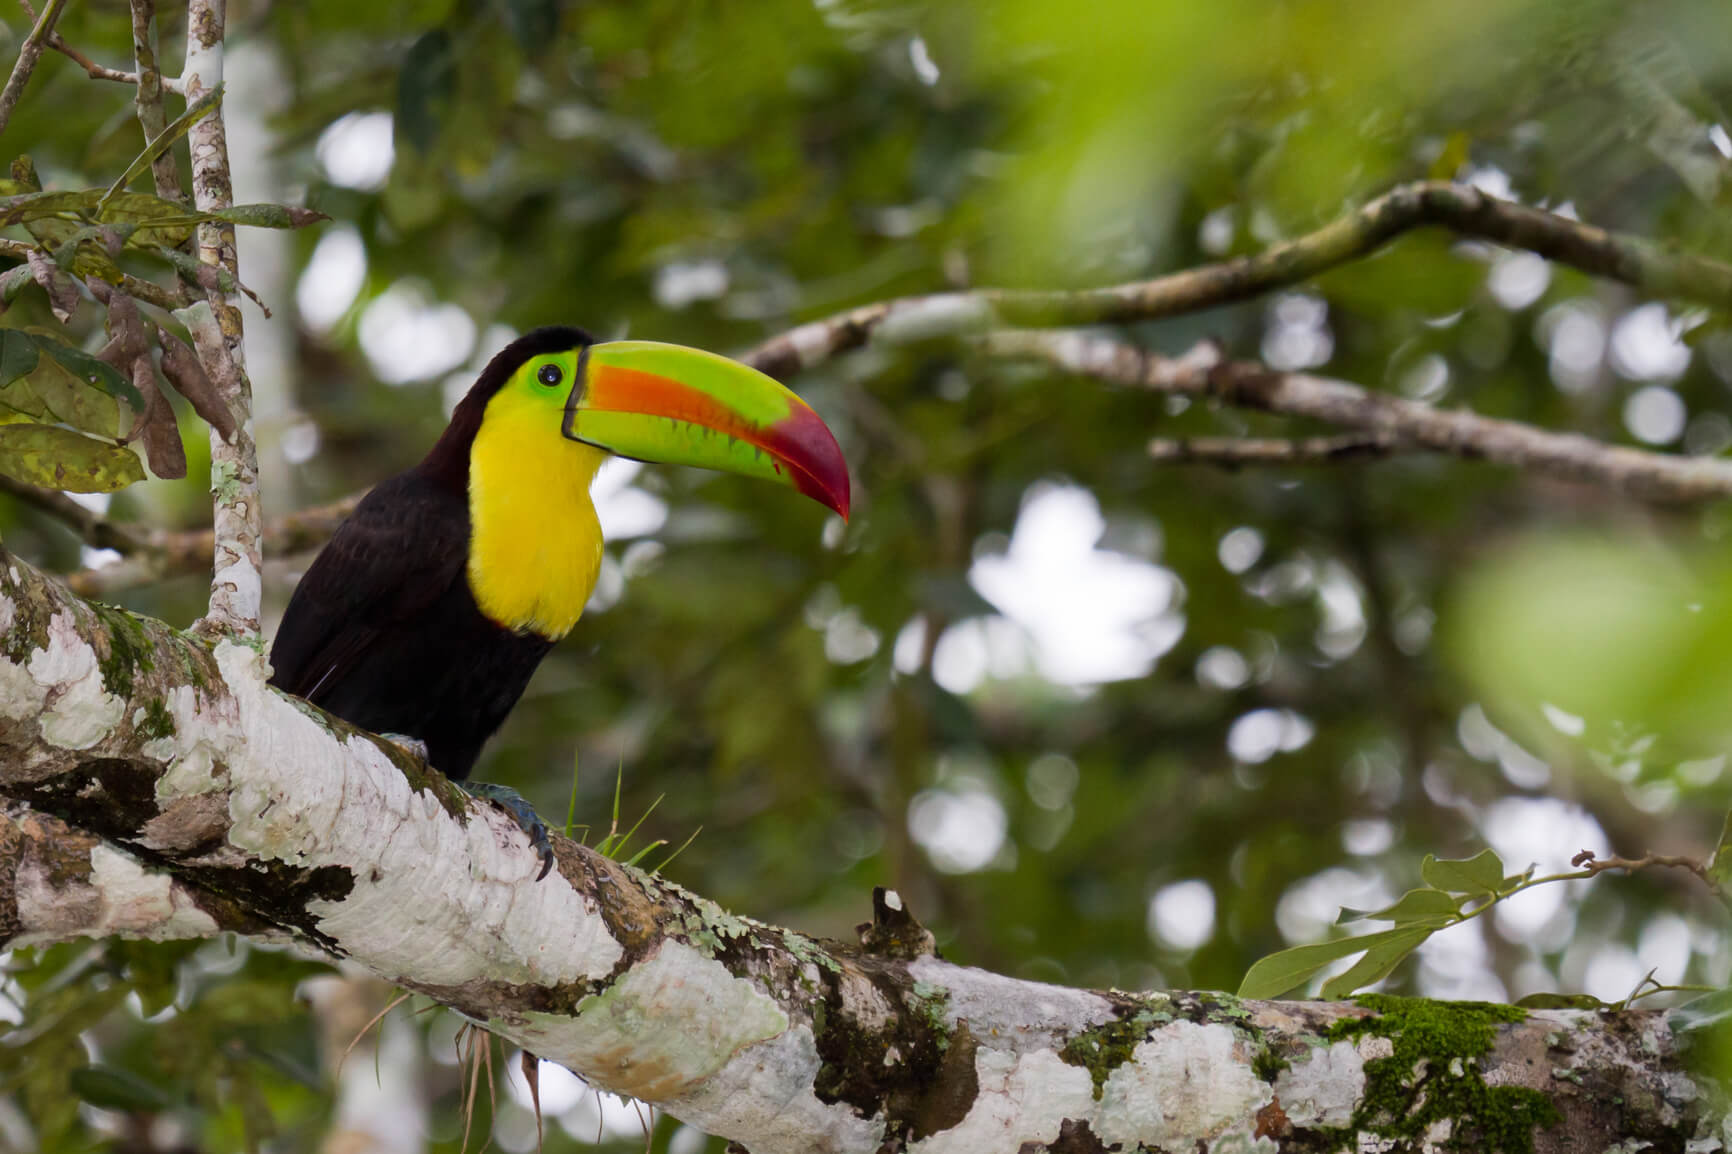 Non-stop from London, UK to Liberia, Costa Rica for only £349 roundtrip